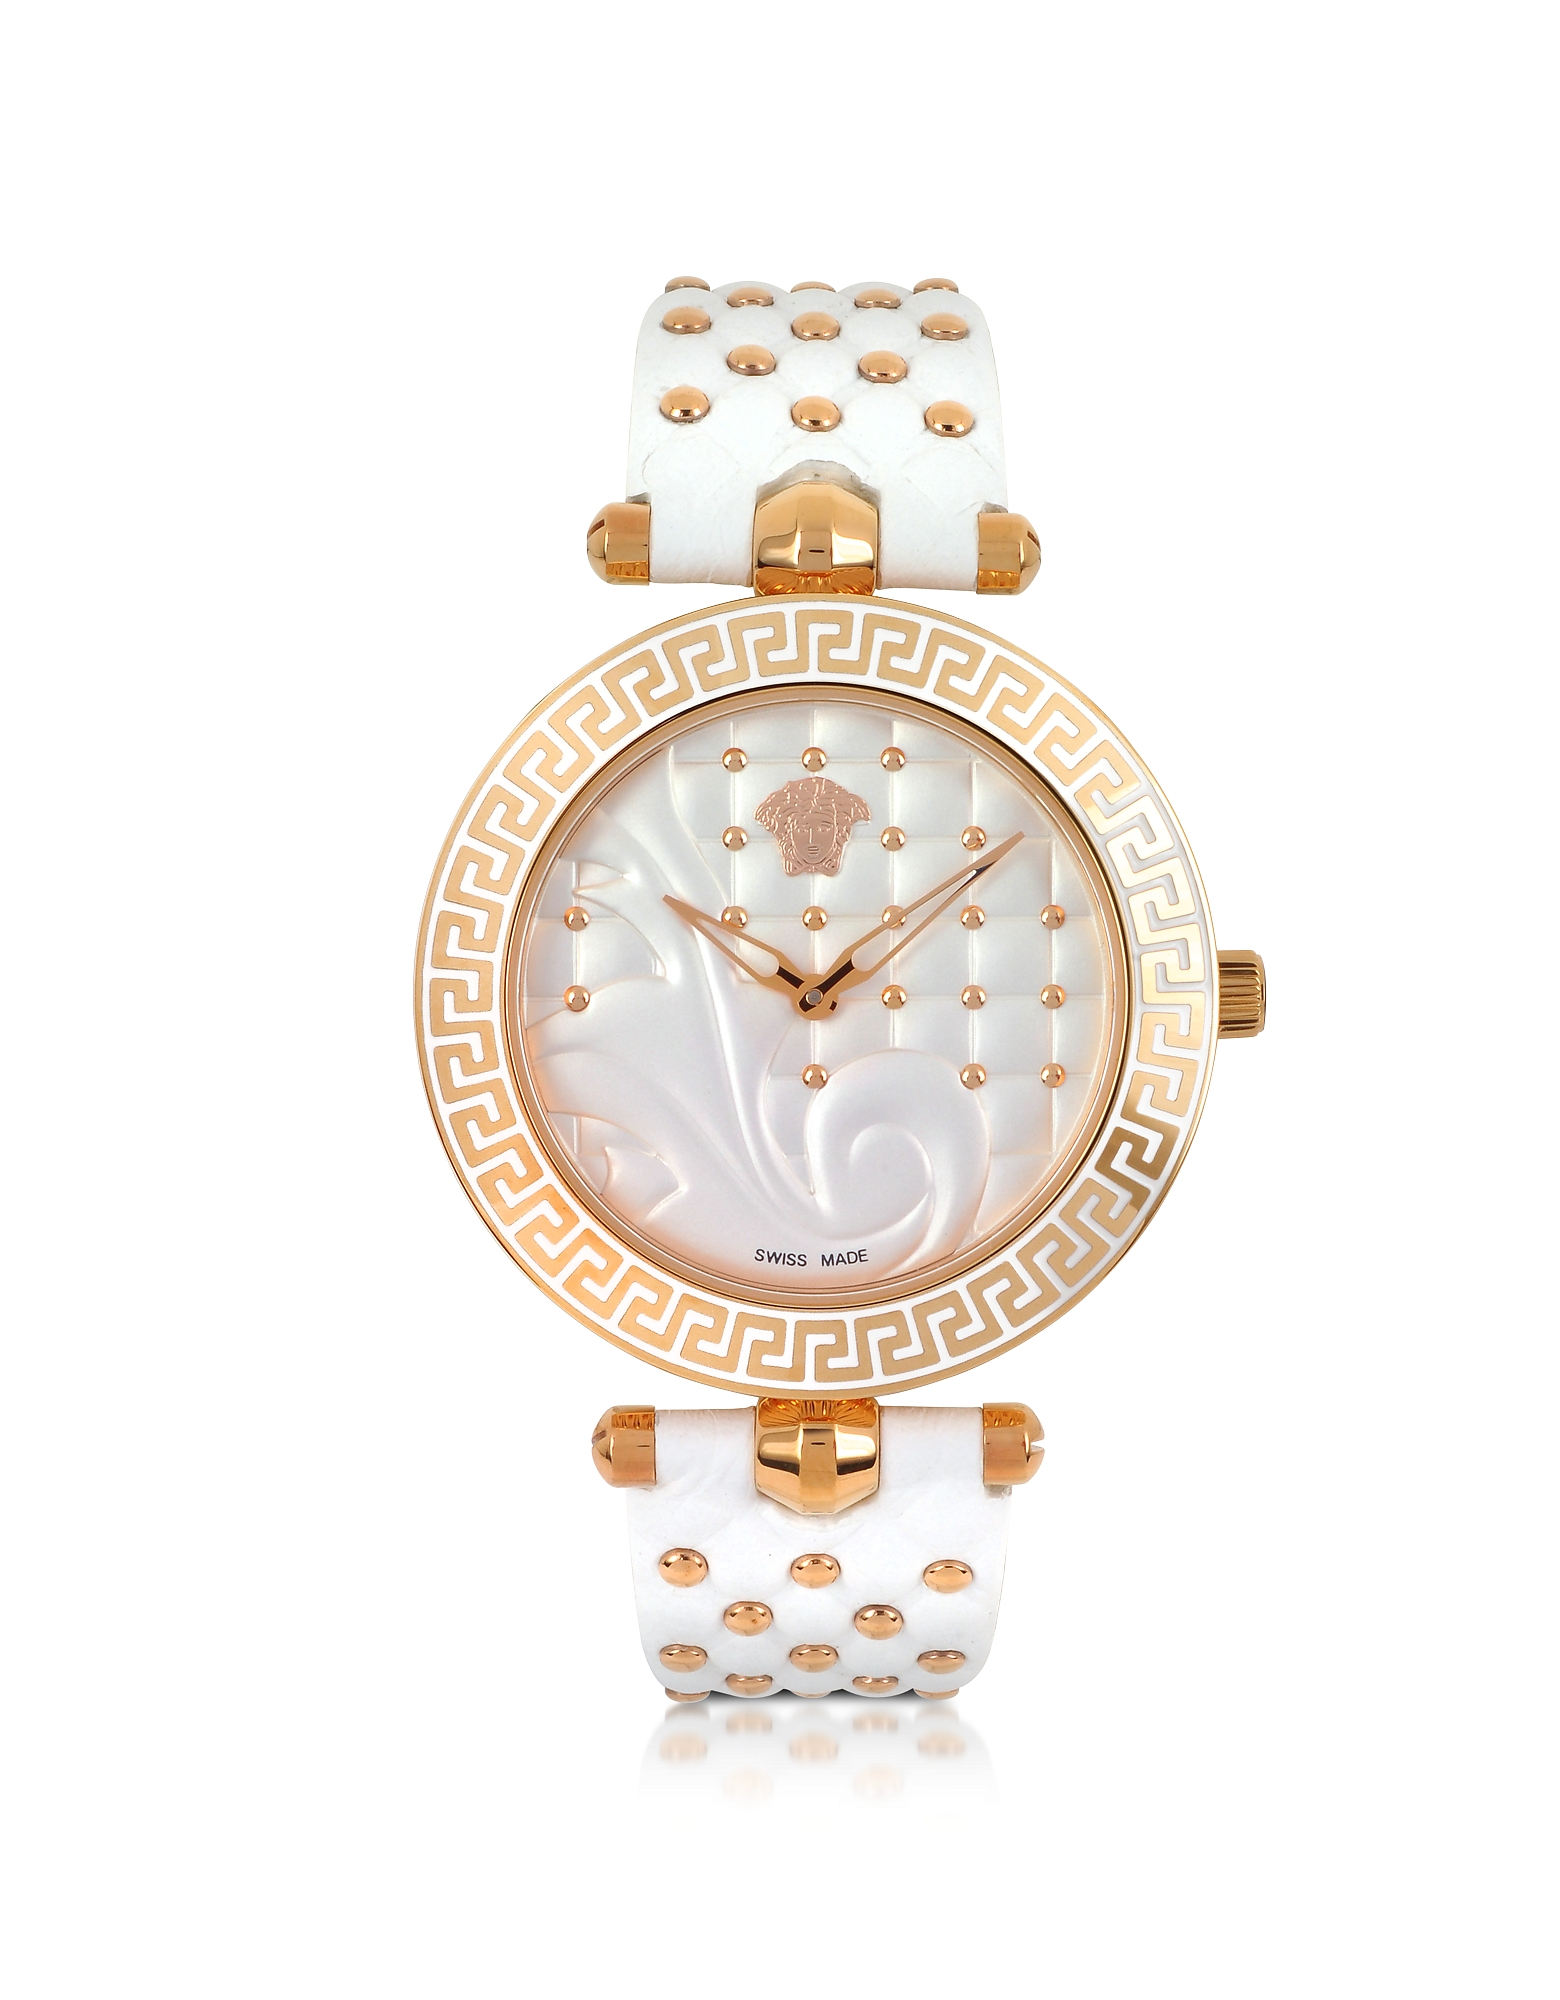 Versace Women's Watches, Vanitas White Women's Watch